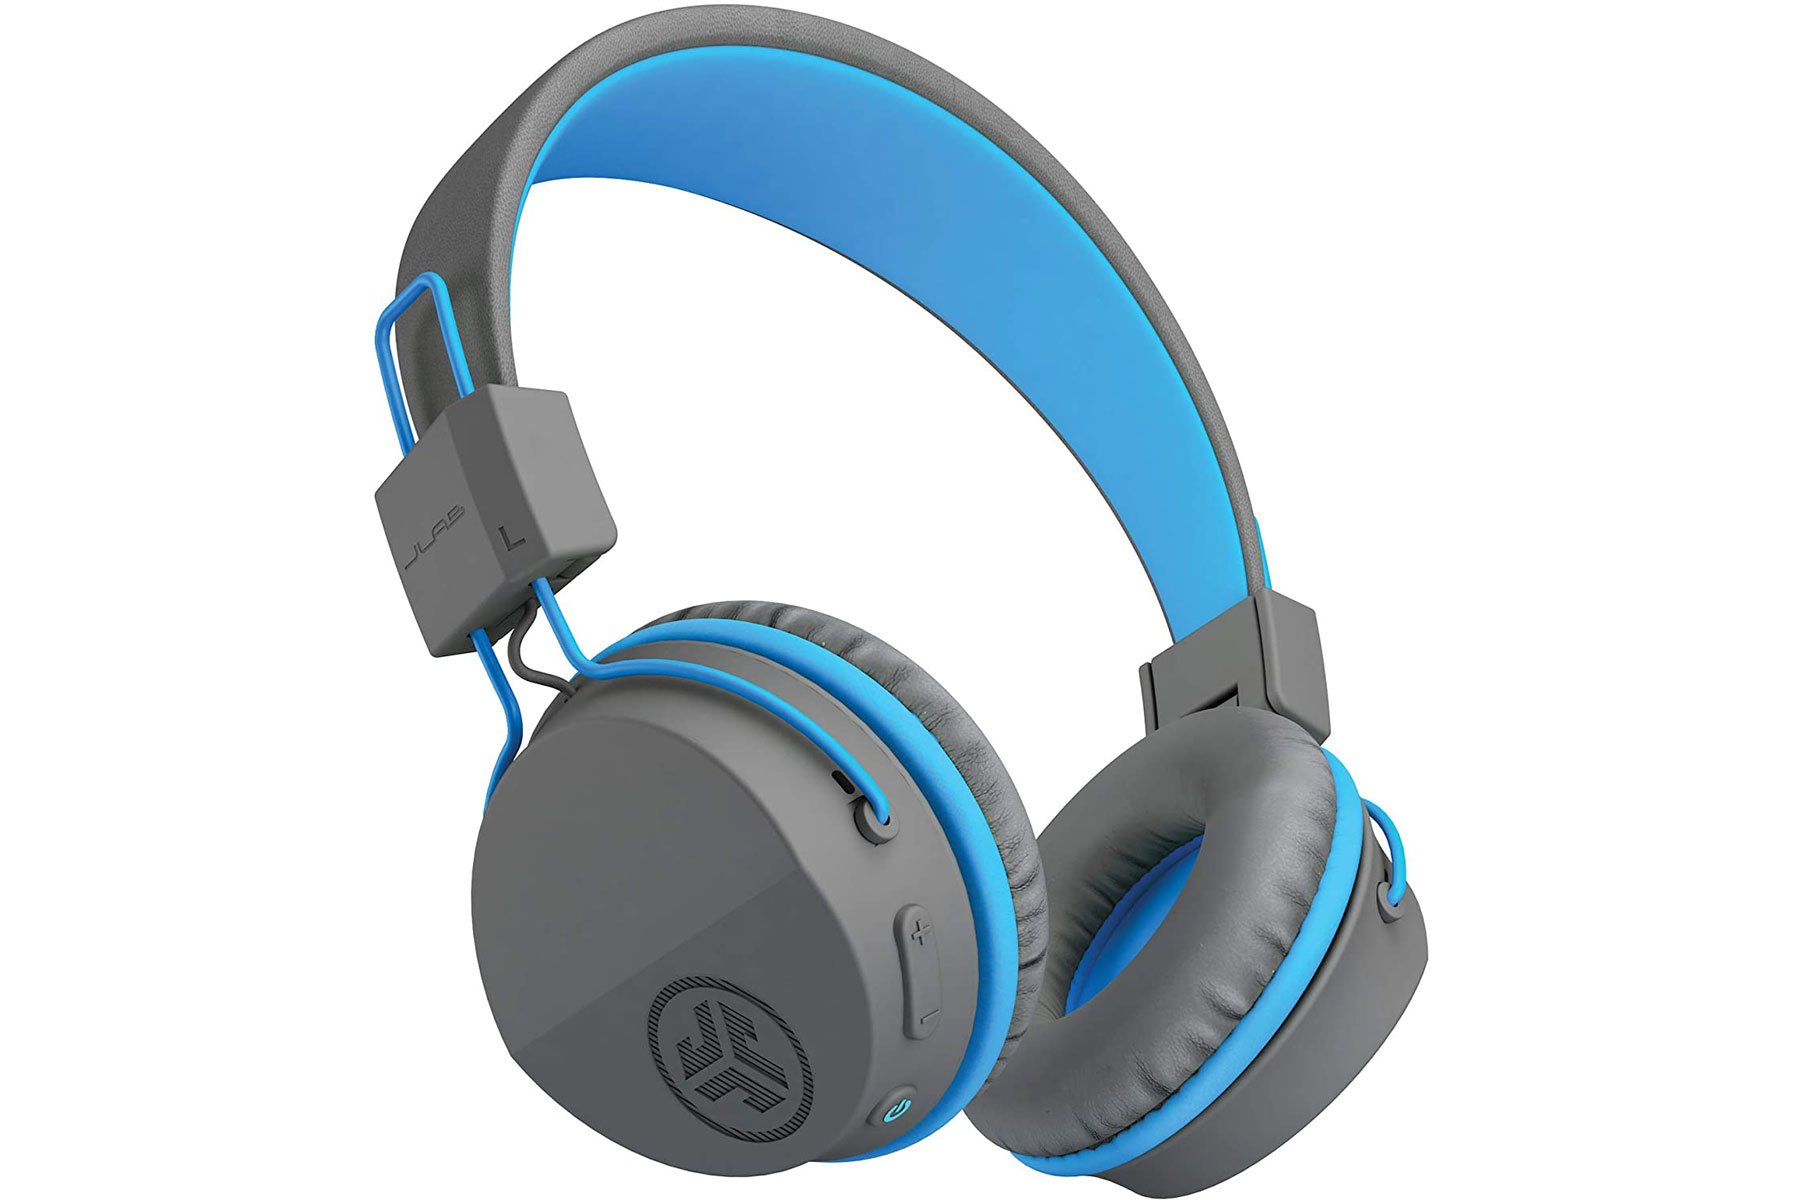 Grey and blue over ear headphones